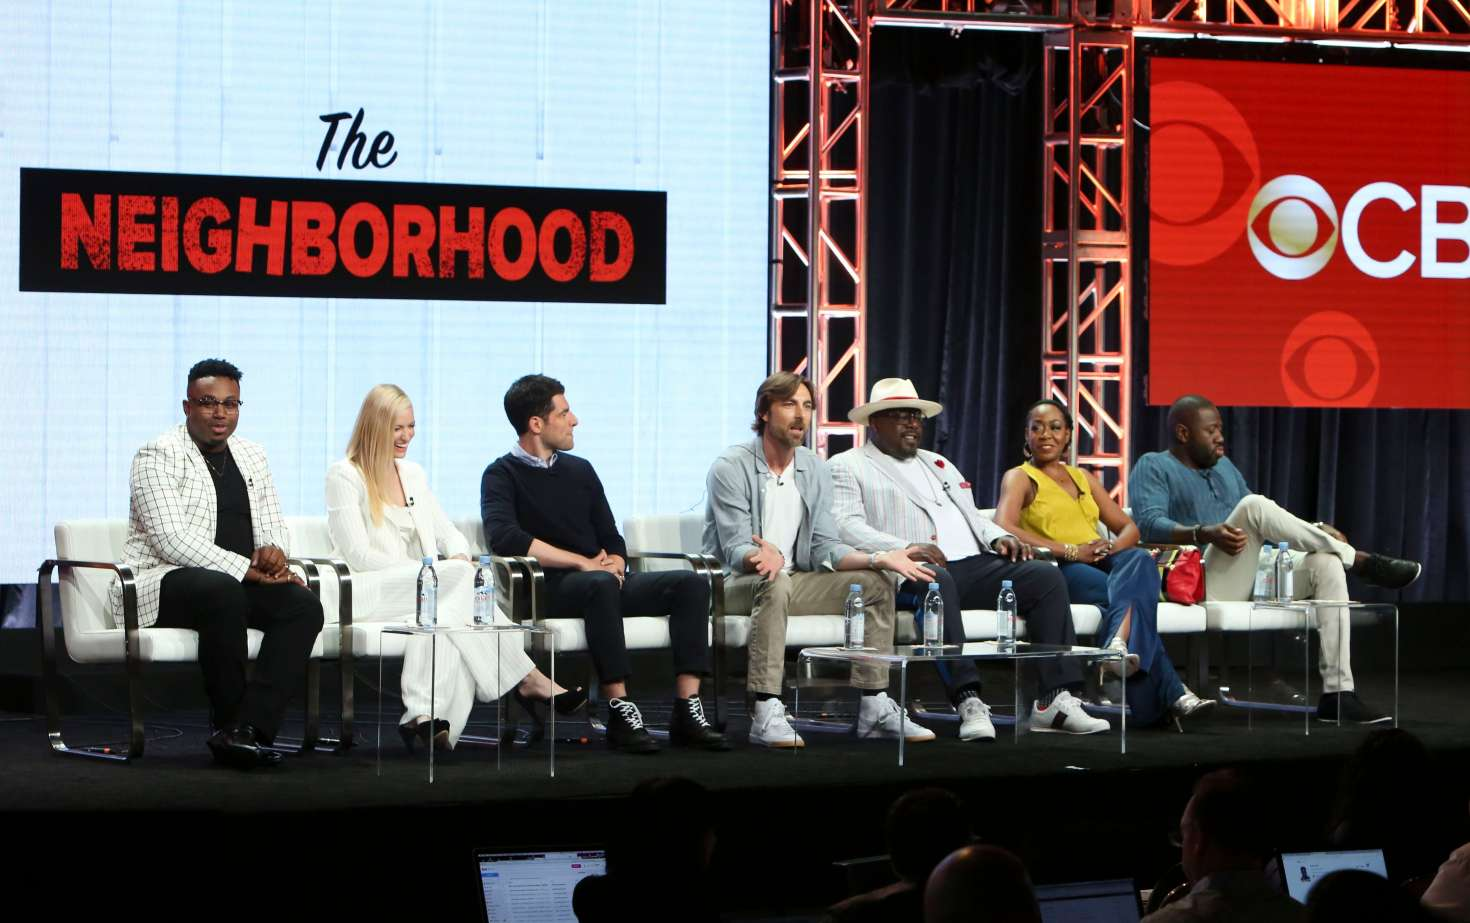 Beth Behrs 2018 : Beth Behrs: The Neighborhood Panel at 2018 TCA Summer Press Tour -06